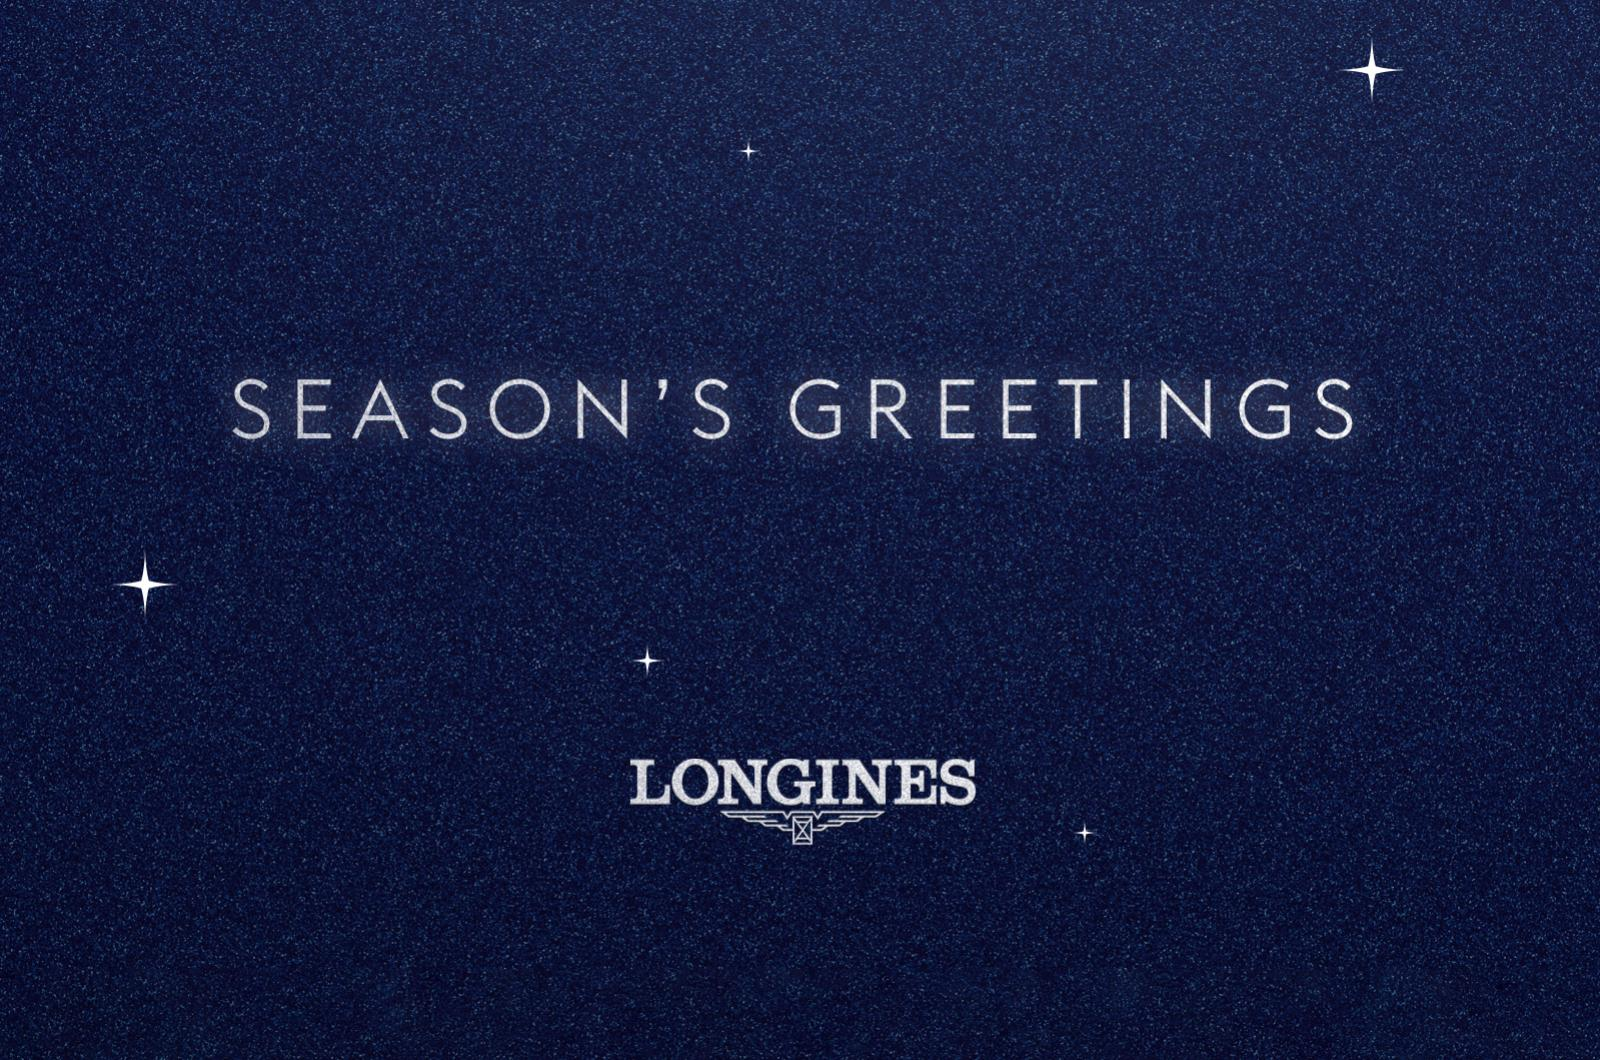 Season's Greetings 2019